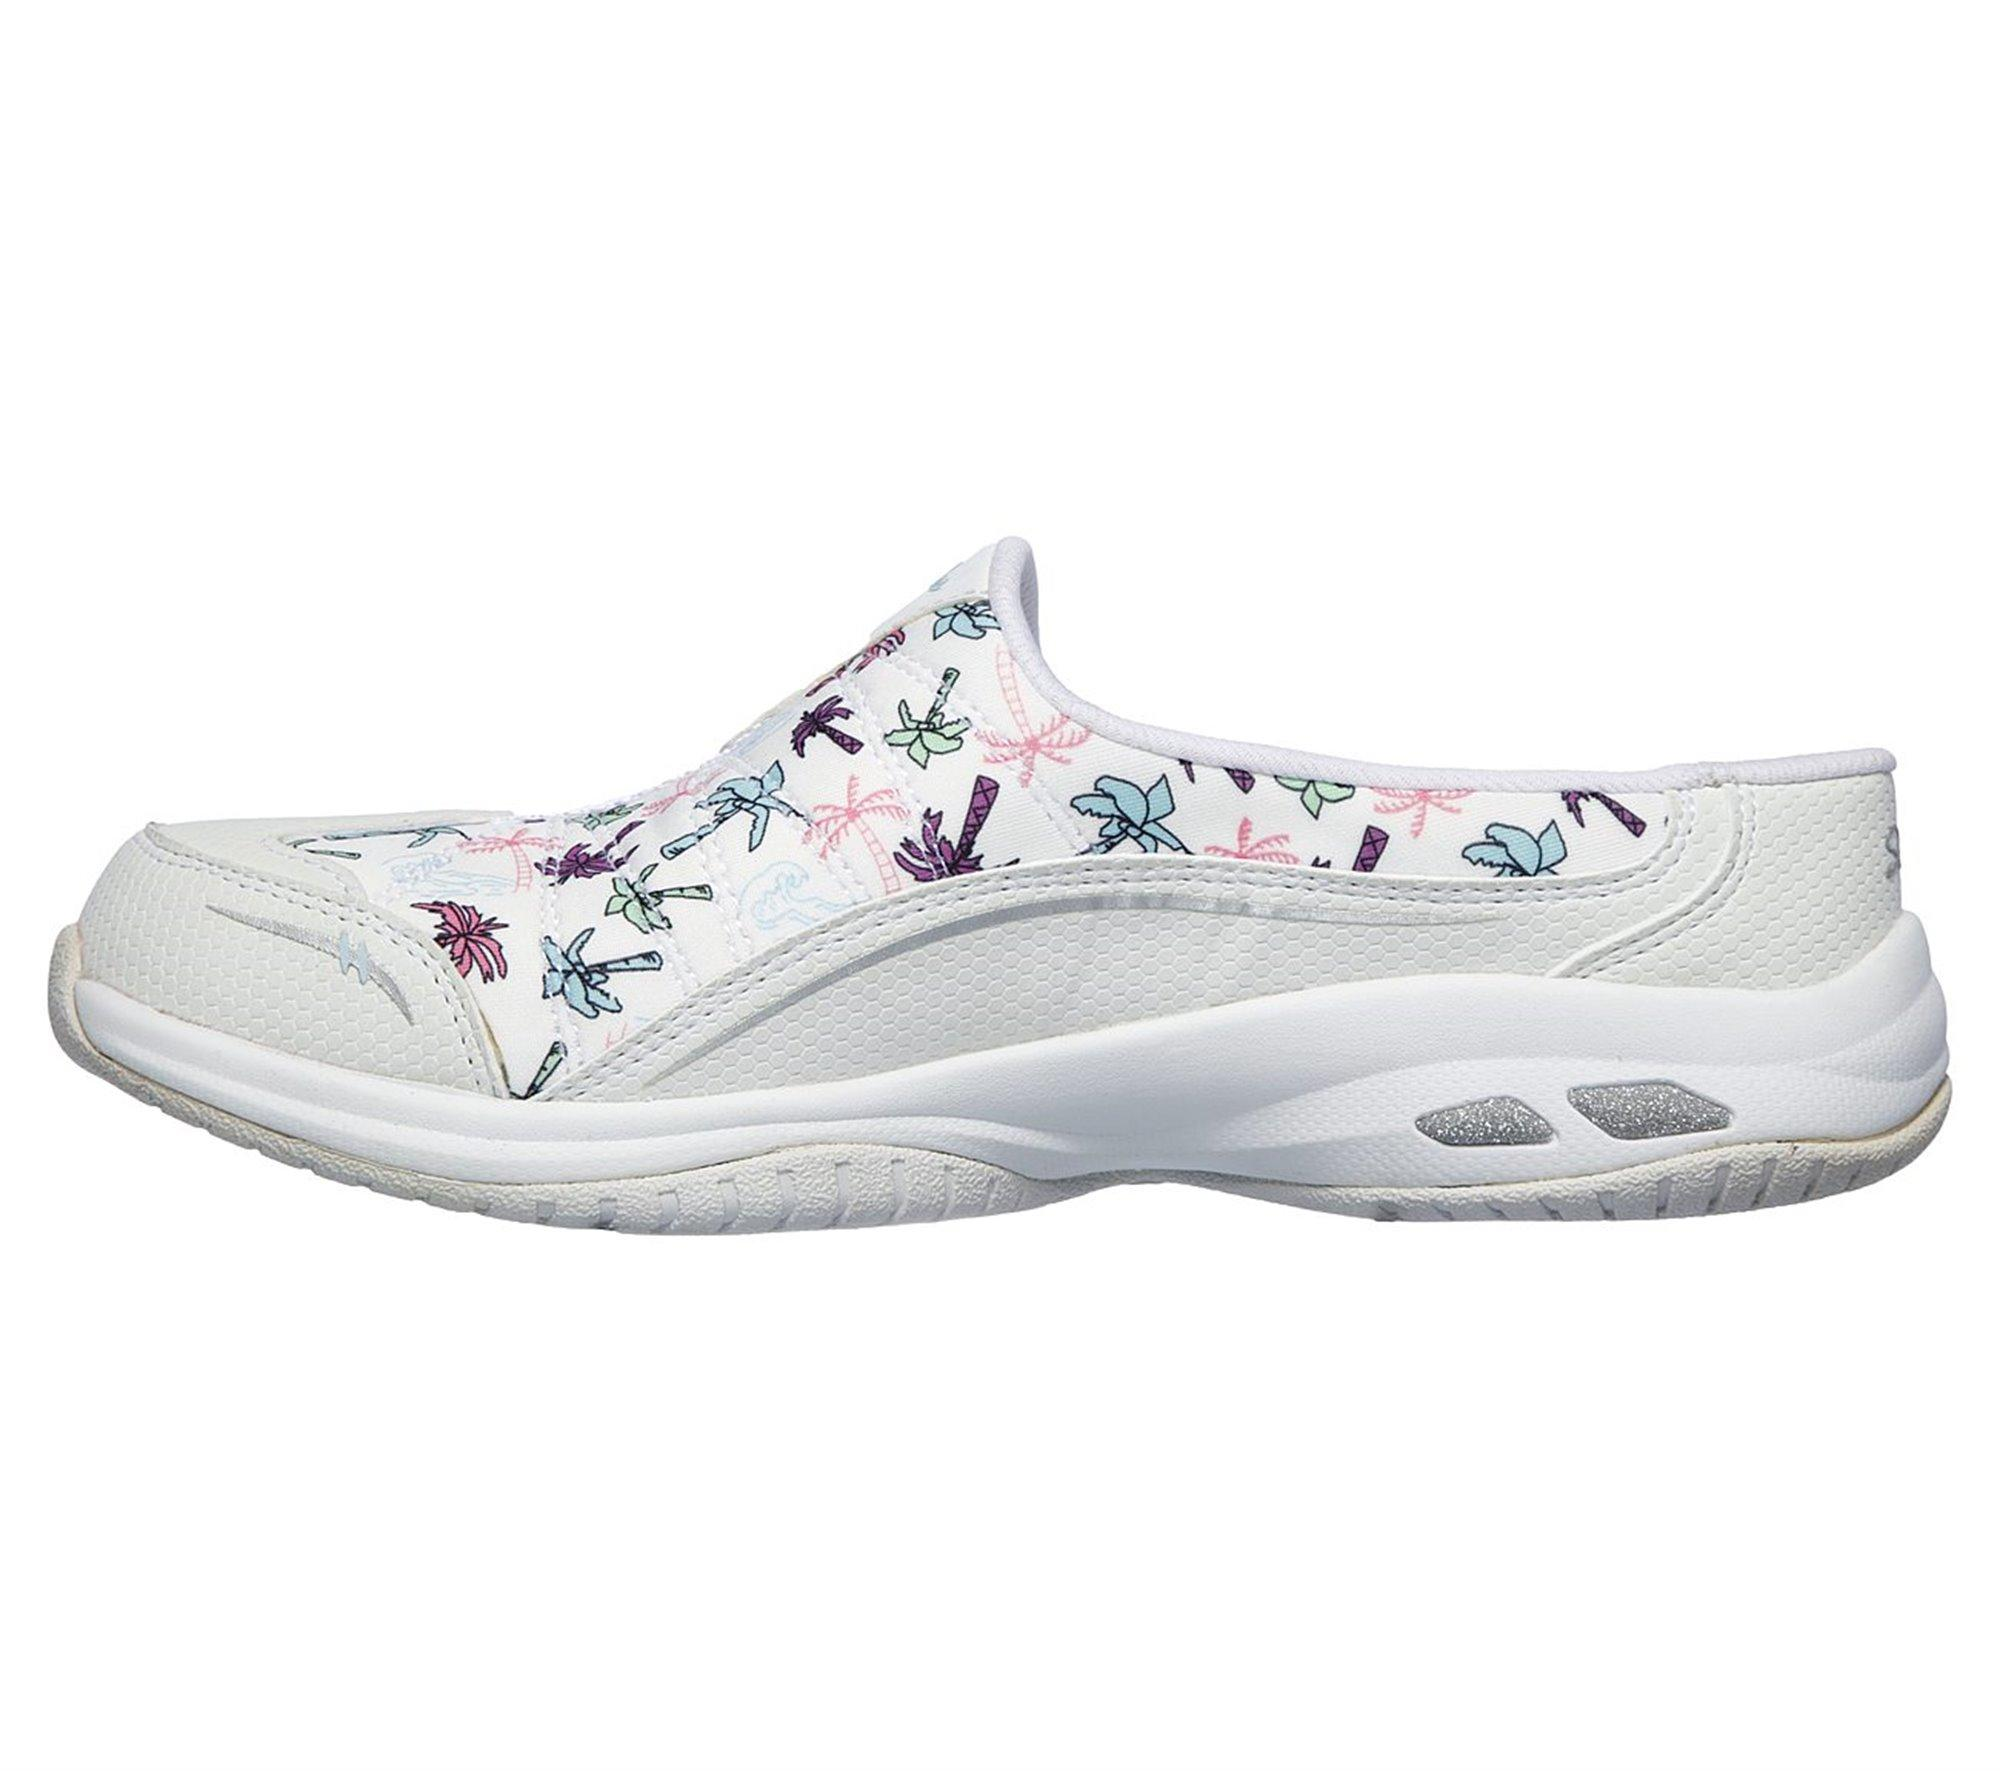 713edd3166e4 Lyst - Skechers Relaxed Fit  Commute Time - Palm Tree Holiday in White